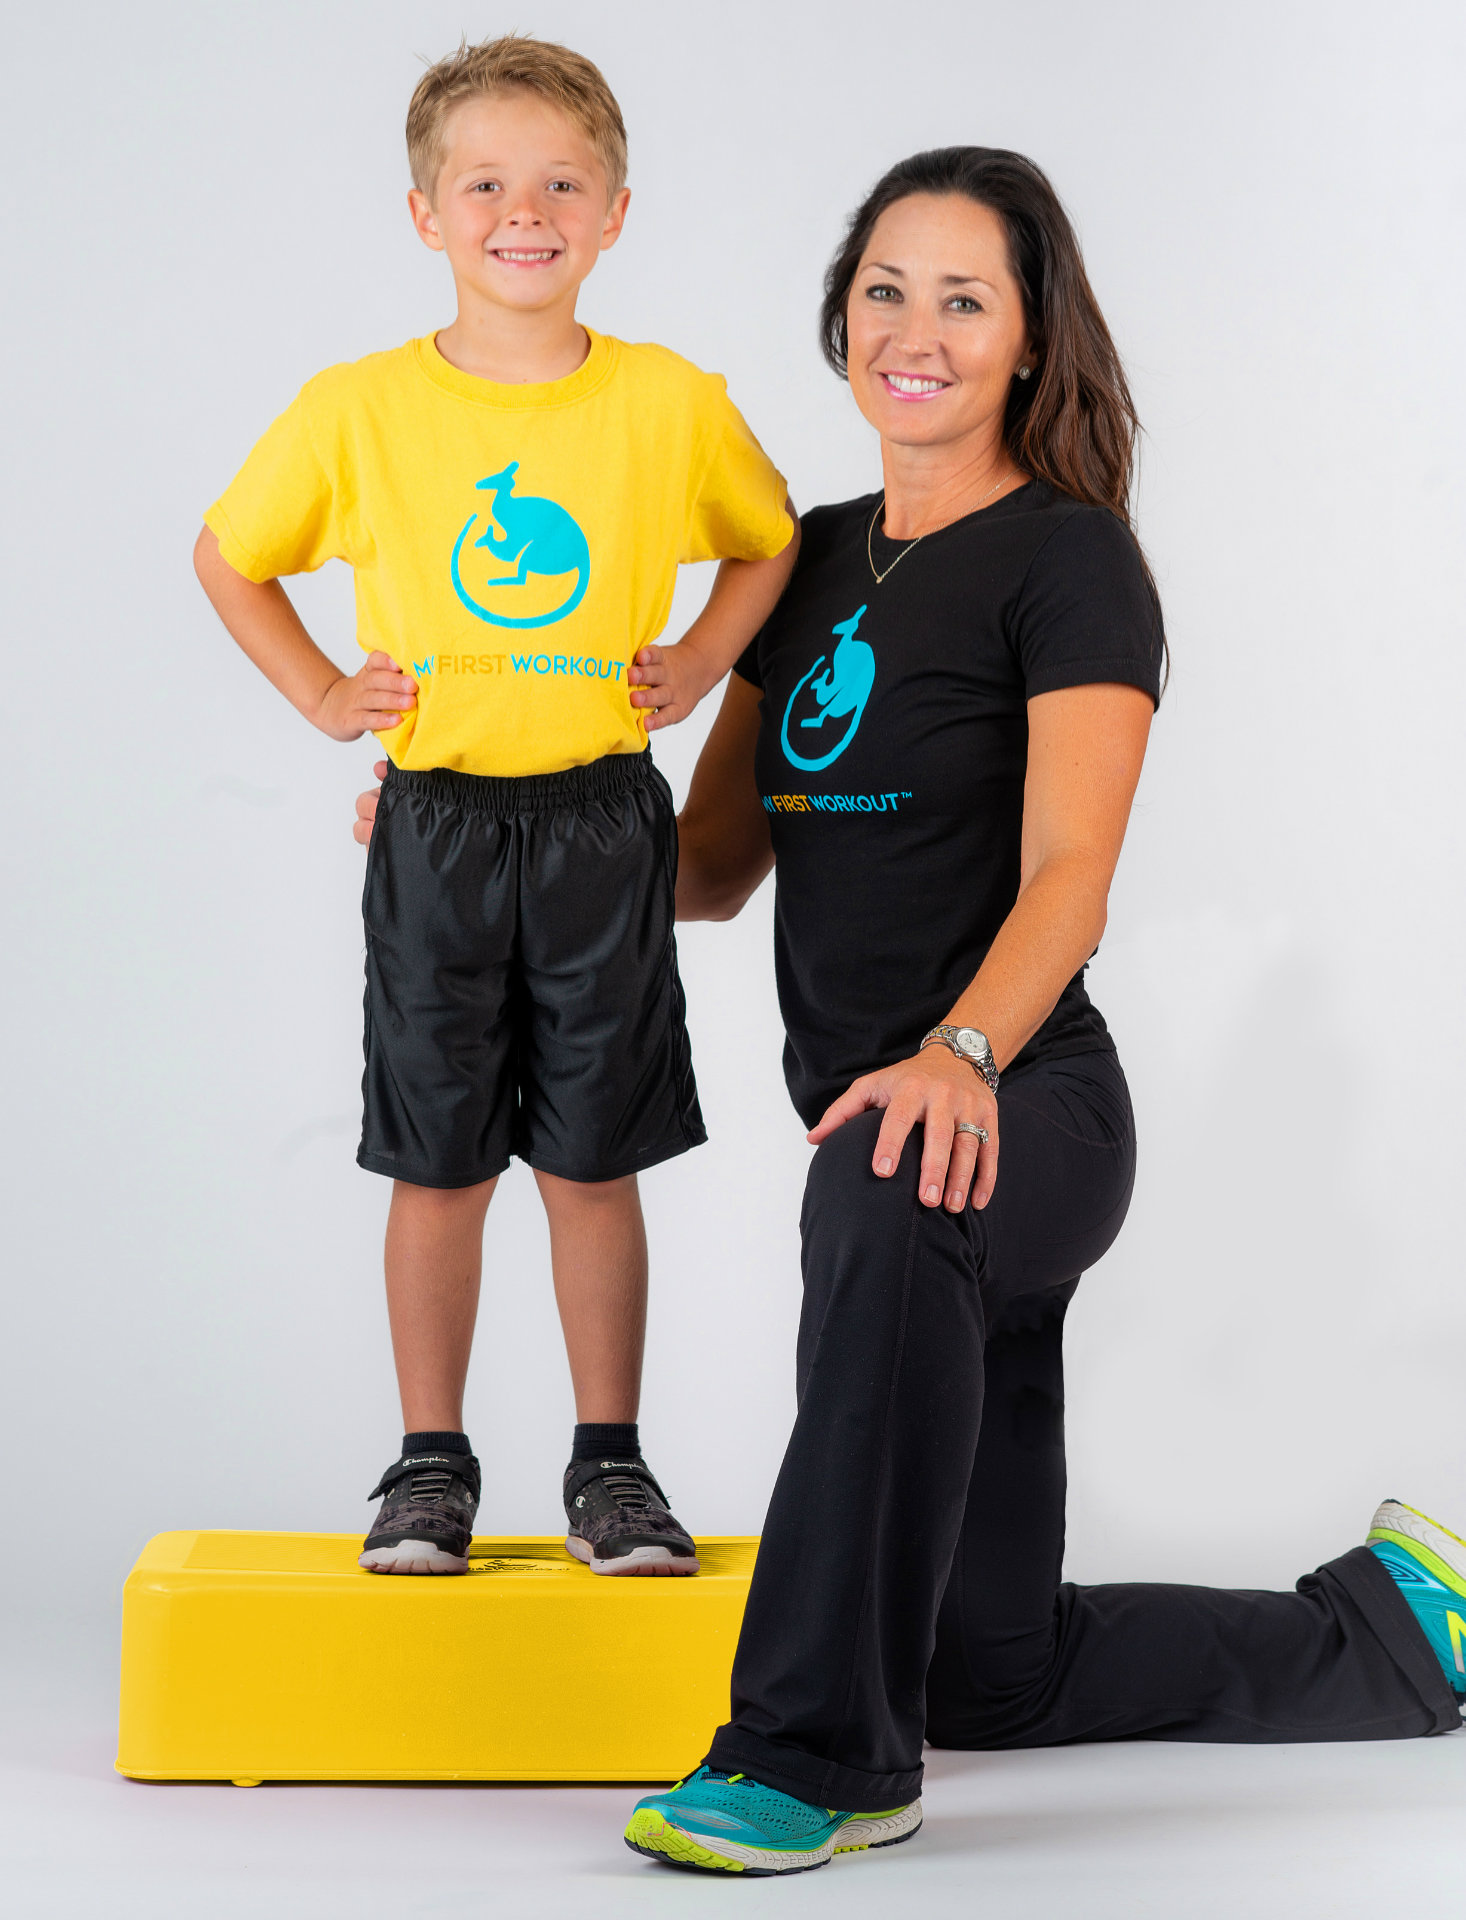 Michelle Miller and her son, Cole